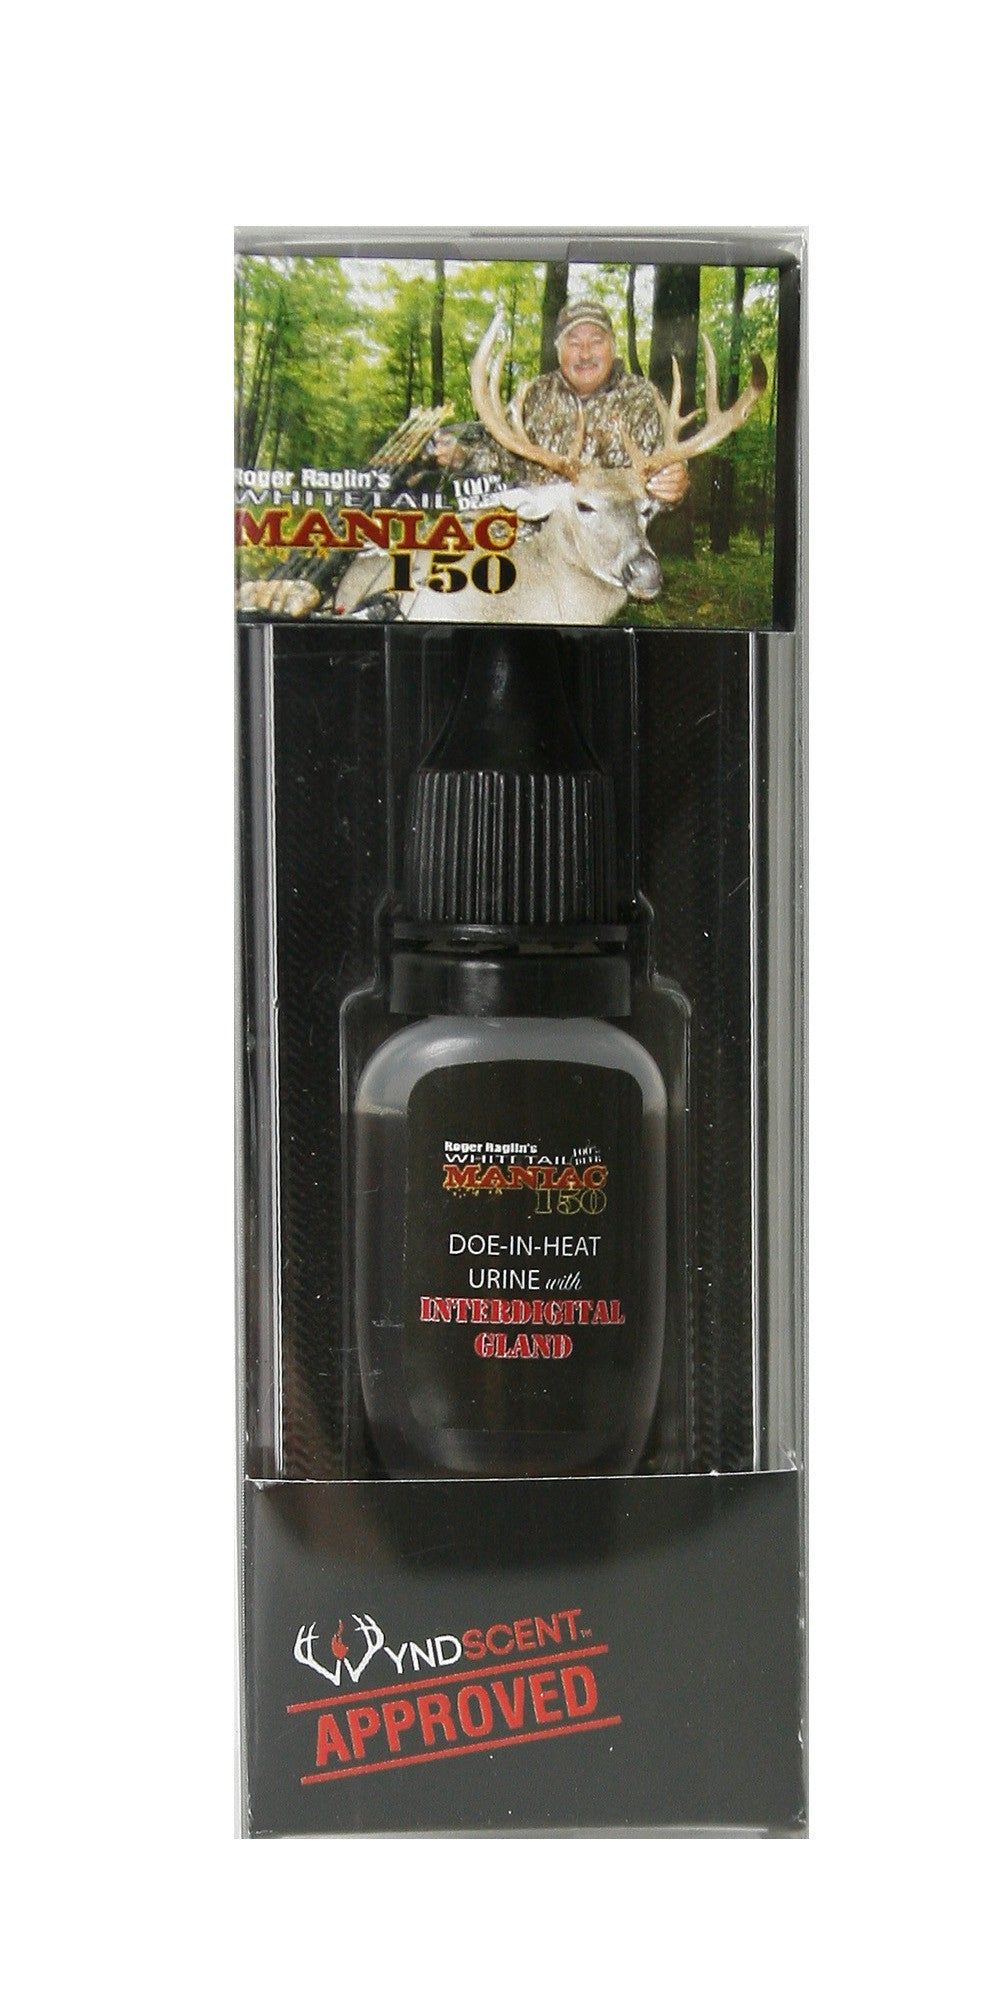 Maniac 150 for WYNDSCENT Vapor Unit